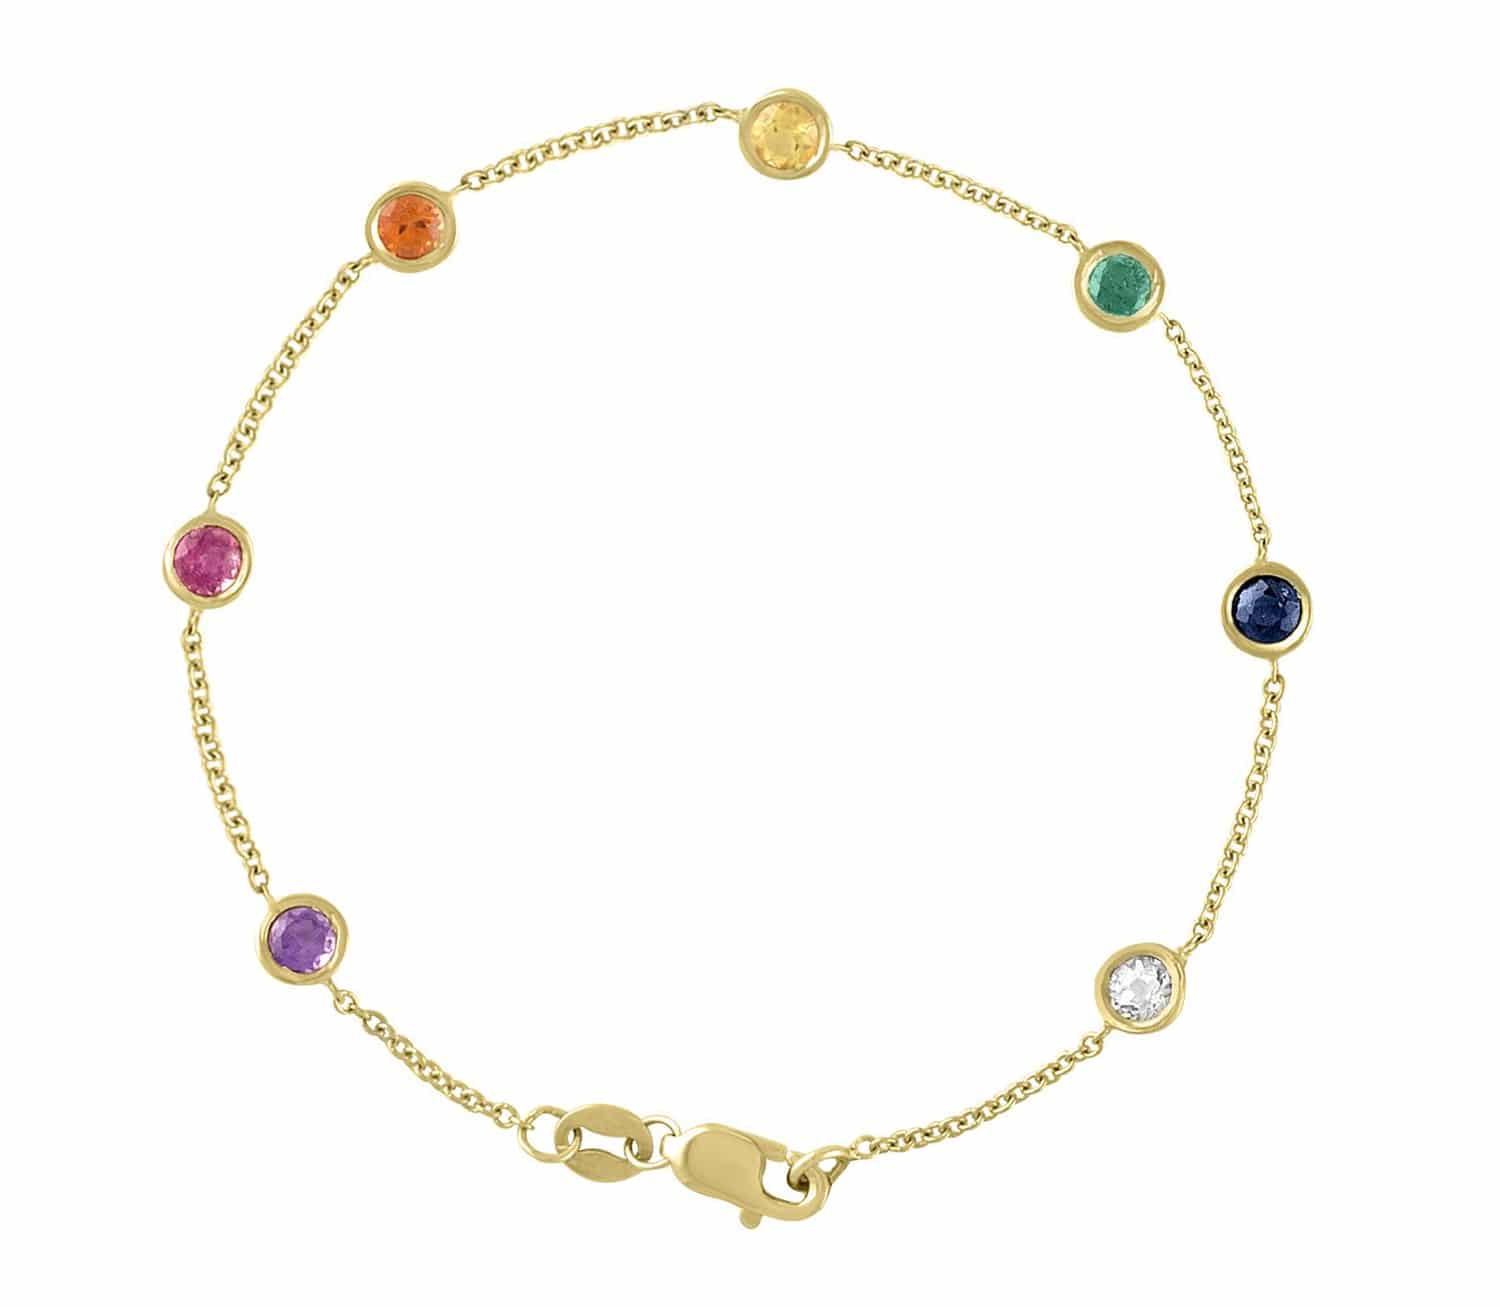 14 Karat Gold Rainbow Gemstone By The Yard Bracelet